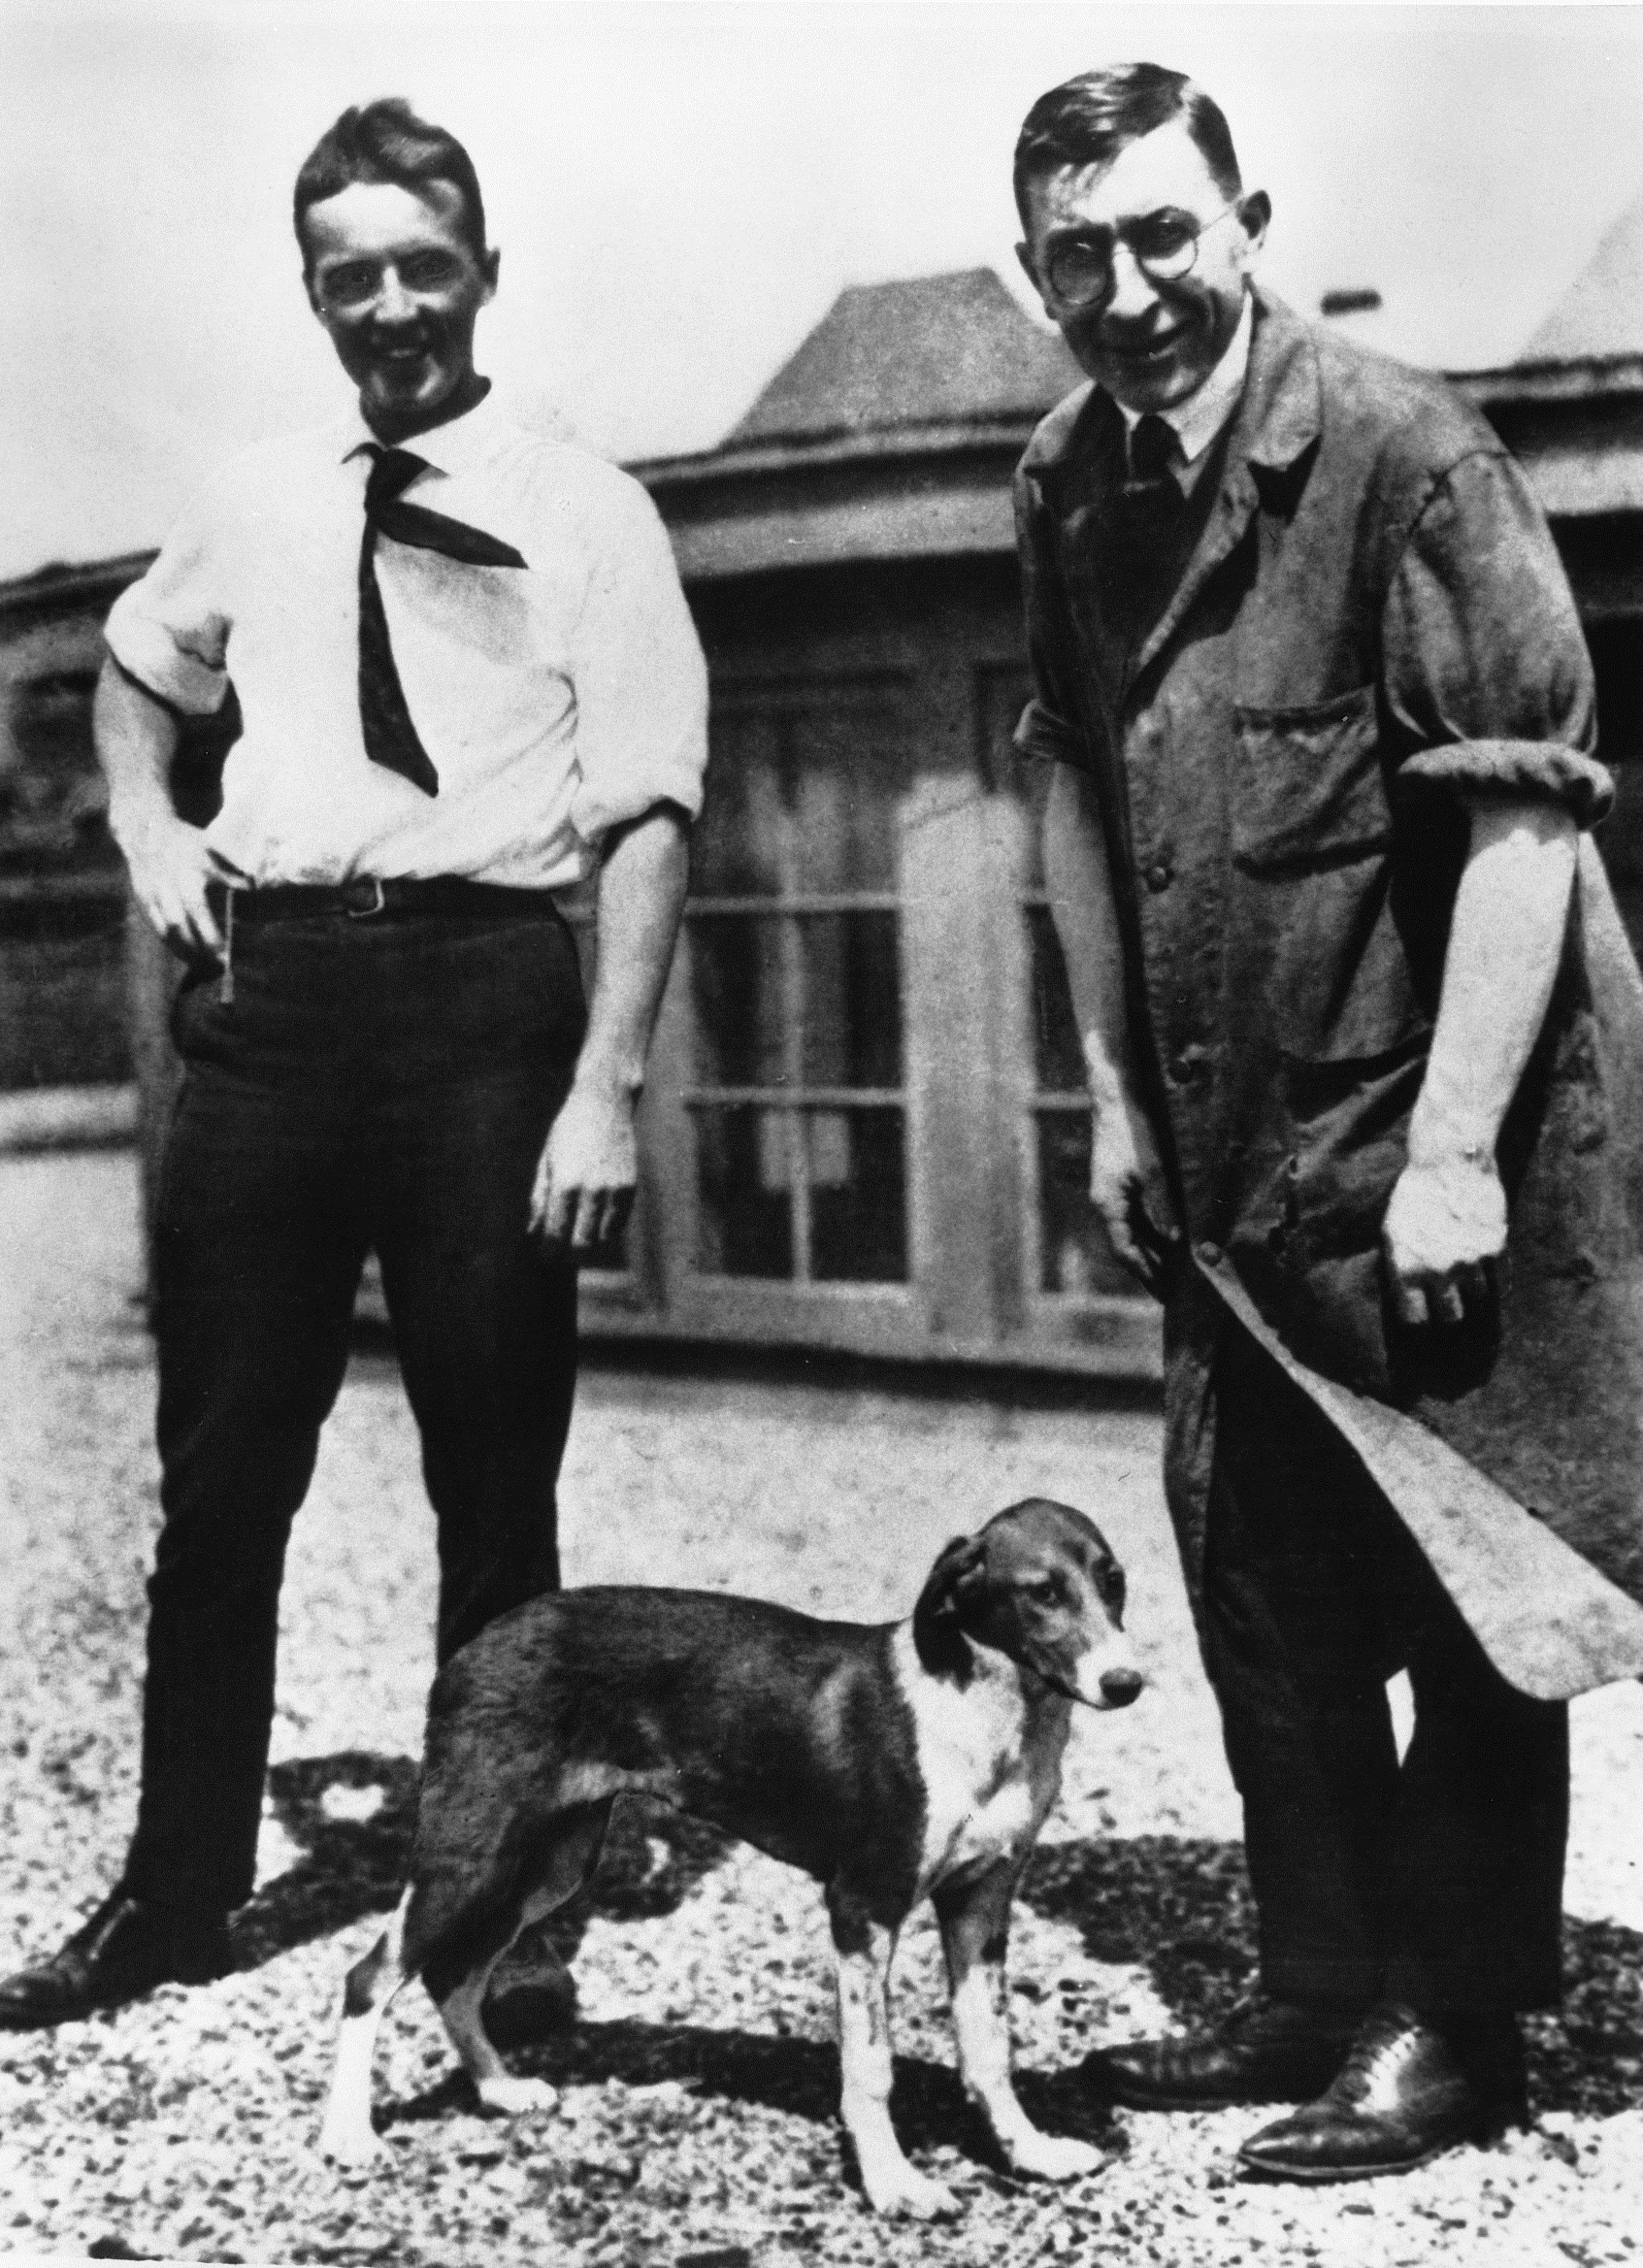 Frederick Banting and Charles Best on the roof of the University of Toronto's Medical Building in 1922. Dogs were used as experimental subjects in the insuli. From the F. G. Banting Papers. Courtesy Thomas Fisher Rare Book Library, University of Toronto.